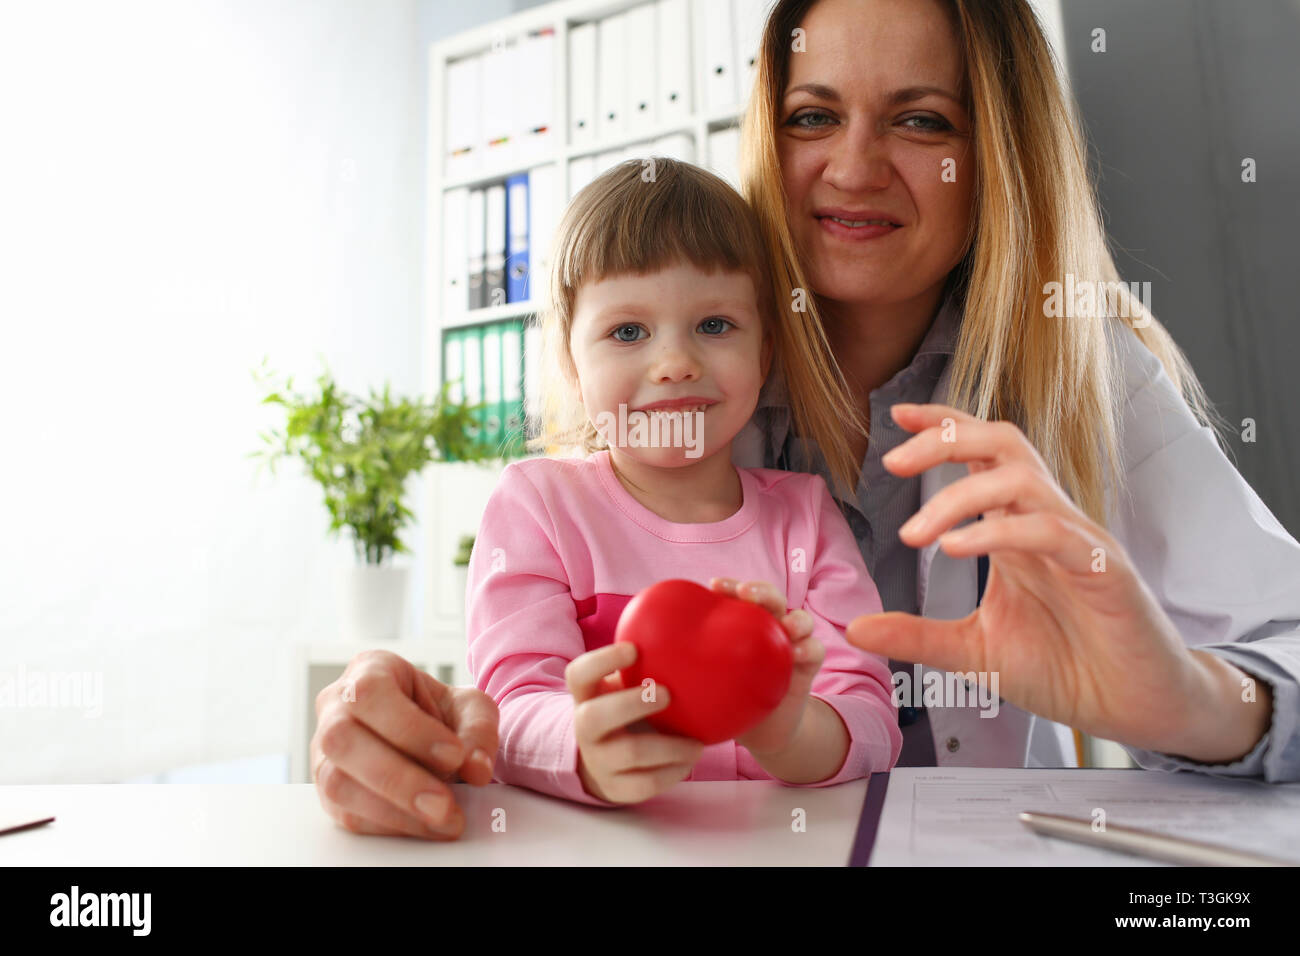 Little baby girl visiting doctor holding in hands red toy heart - Stock Photo